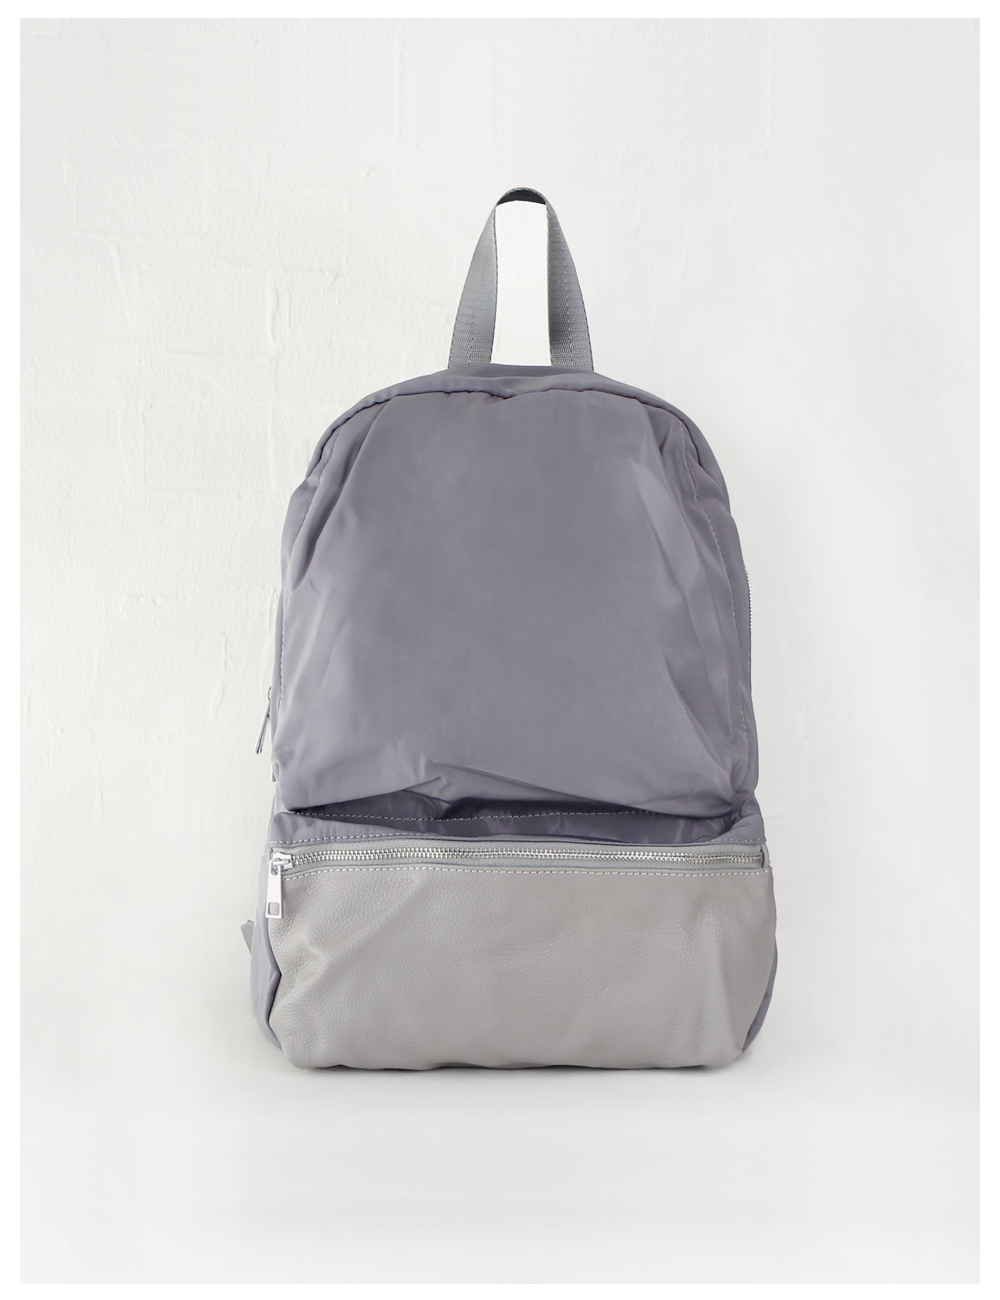 Dave gray leather back pack_Gray